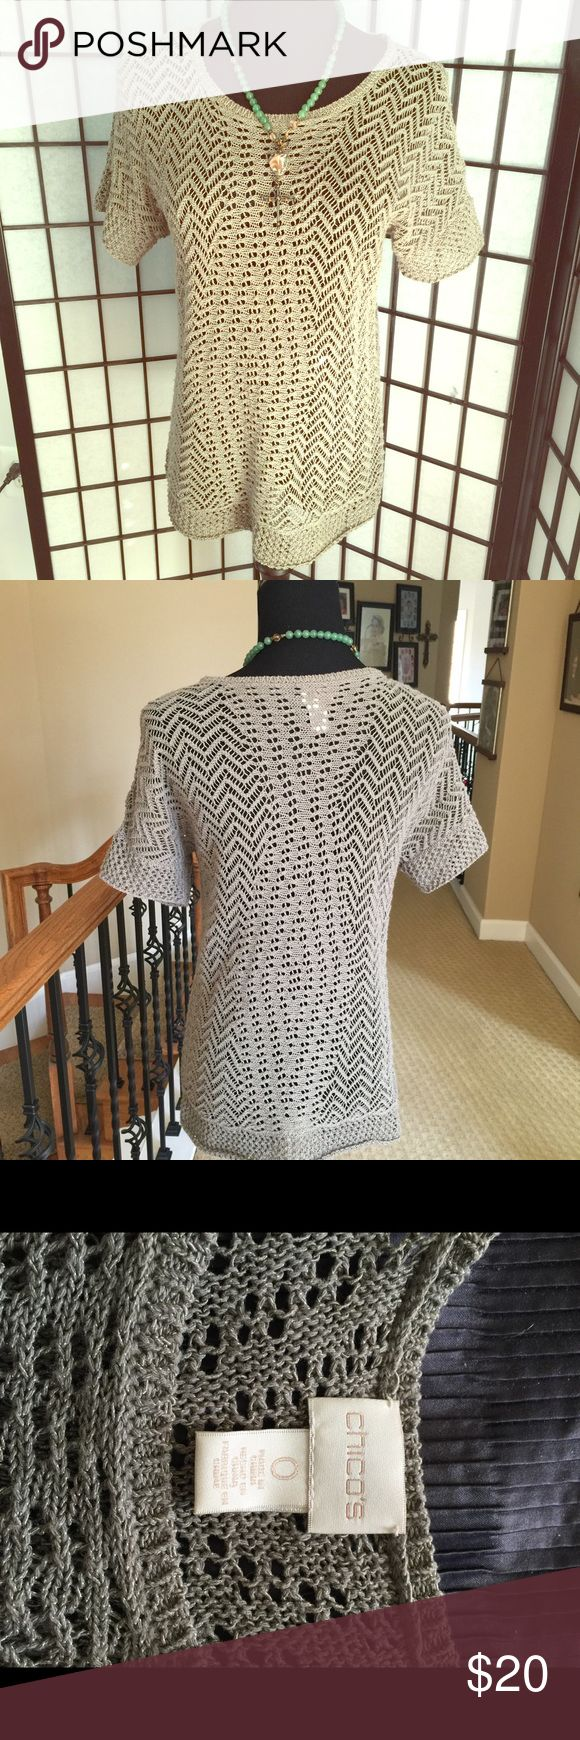 🇺🇸olive open weave short sleeve sweater Chico's size 0 fits a 6/8 Chico's Sweaters Crew & Scoop Necks